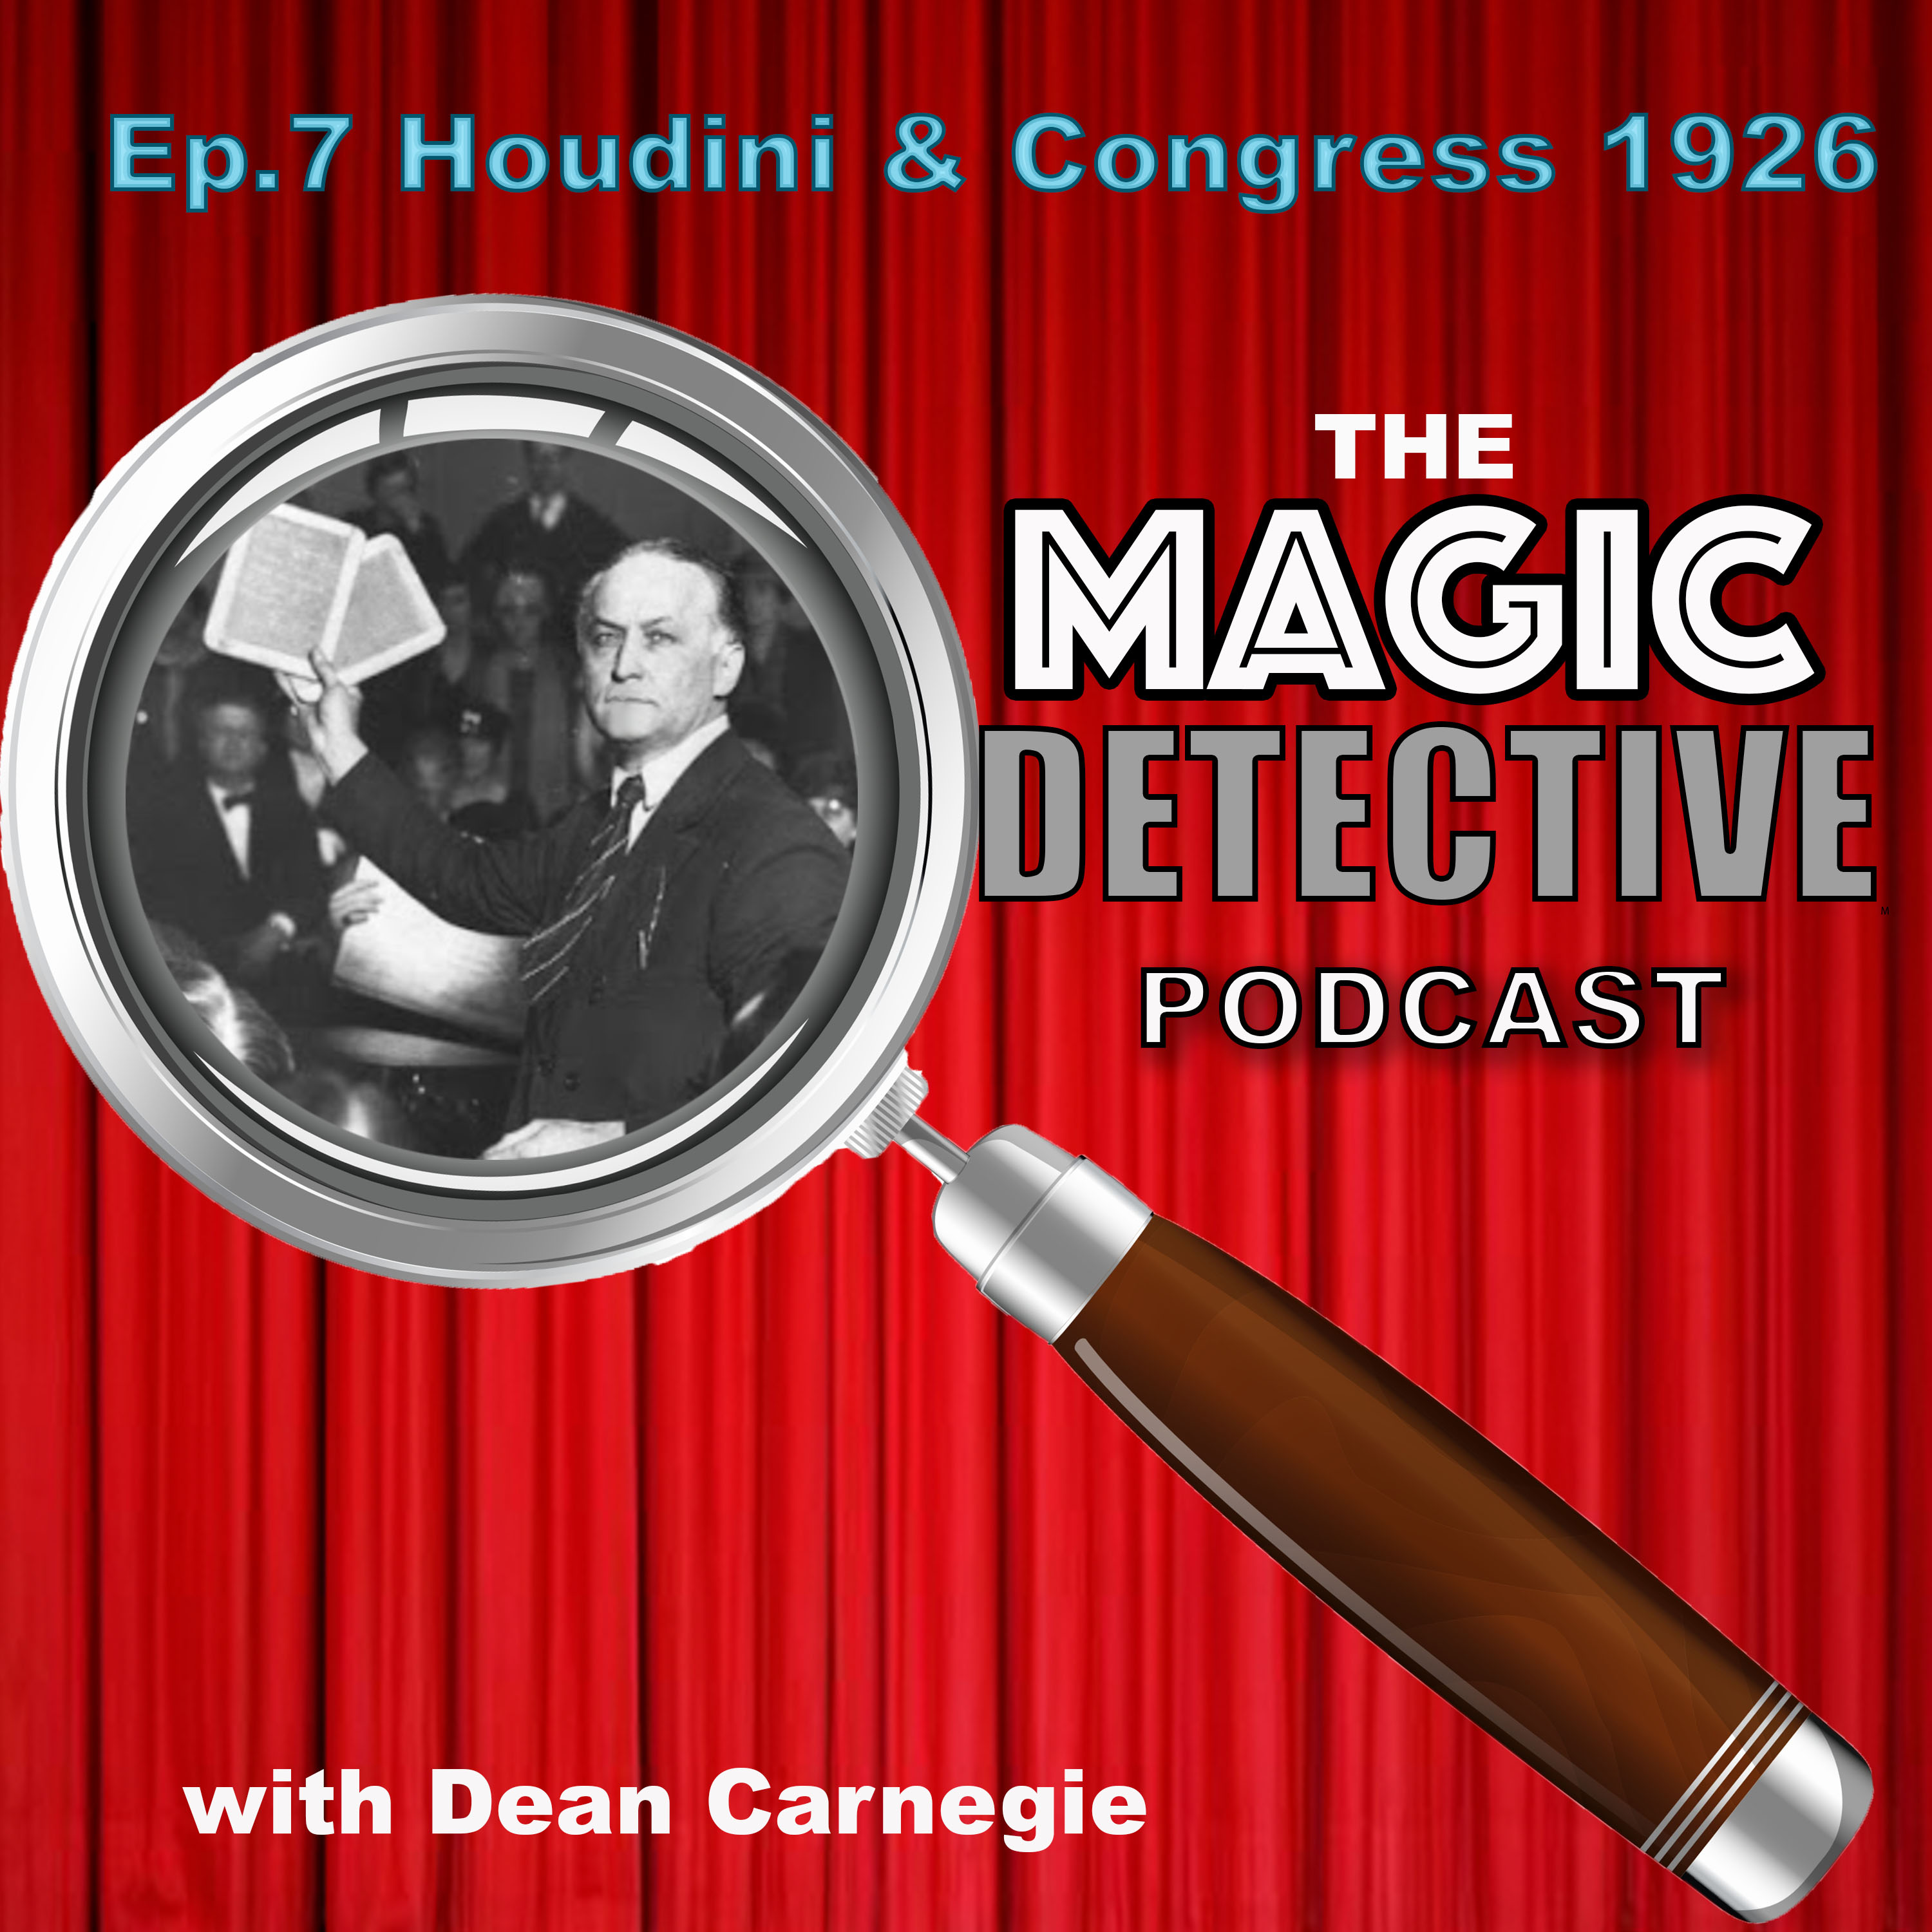 Episode 7 Houdini & Congress 1926